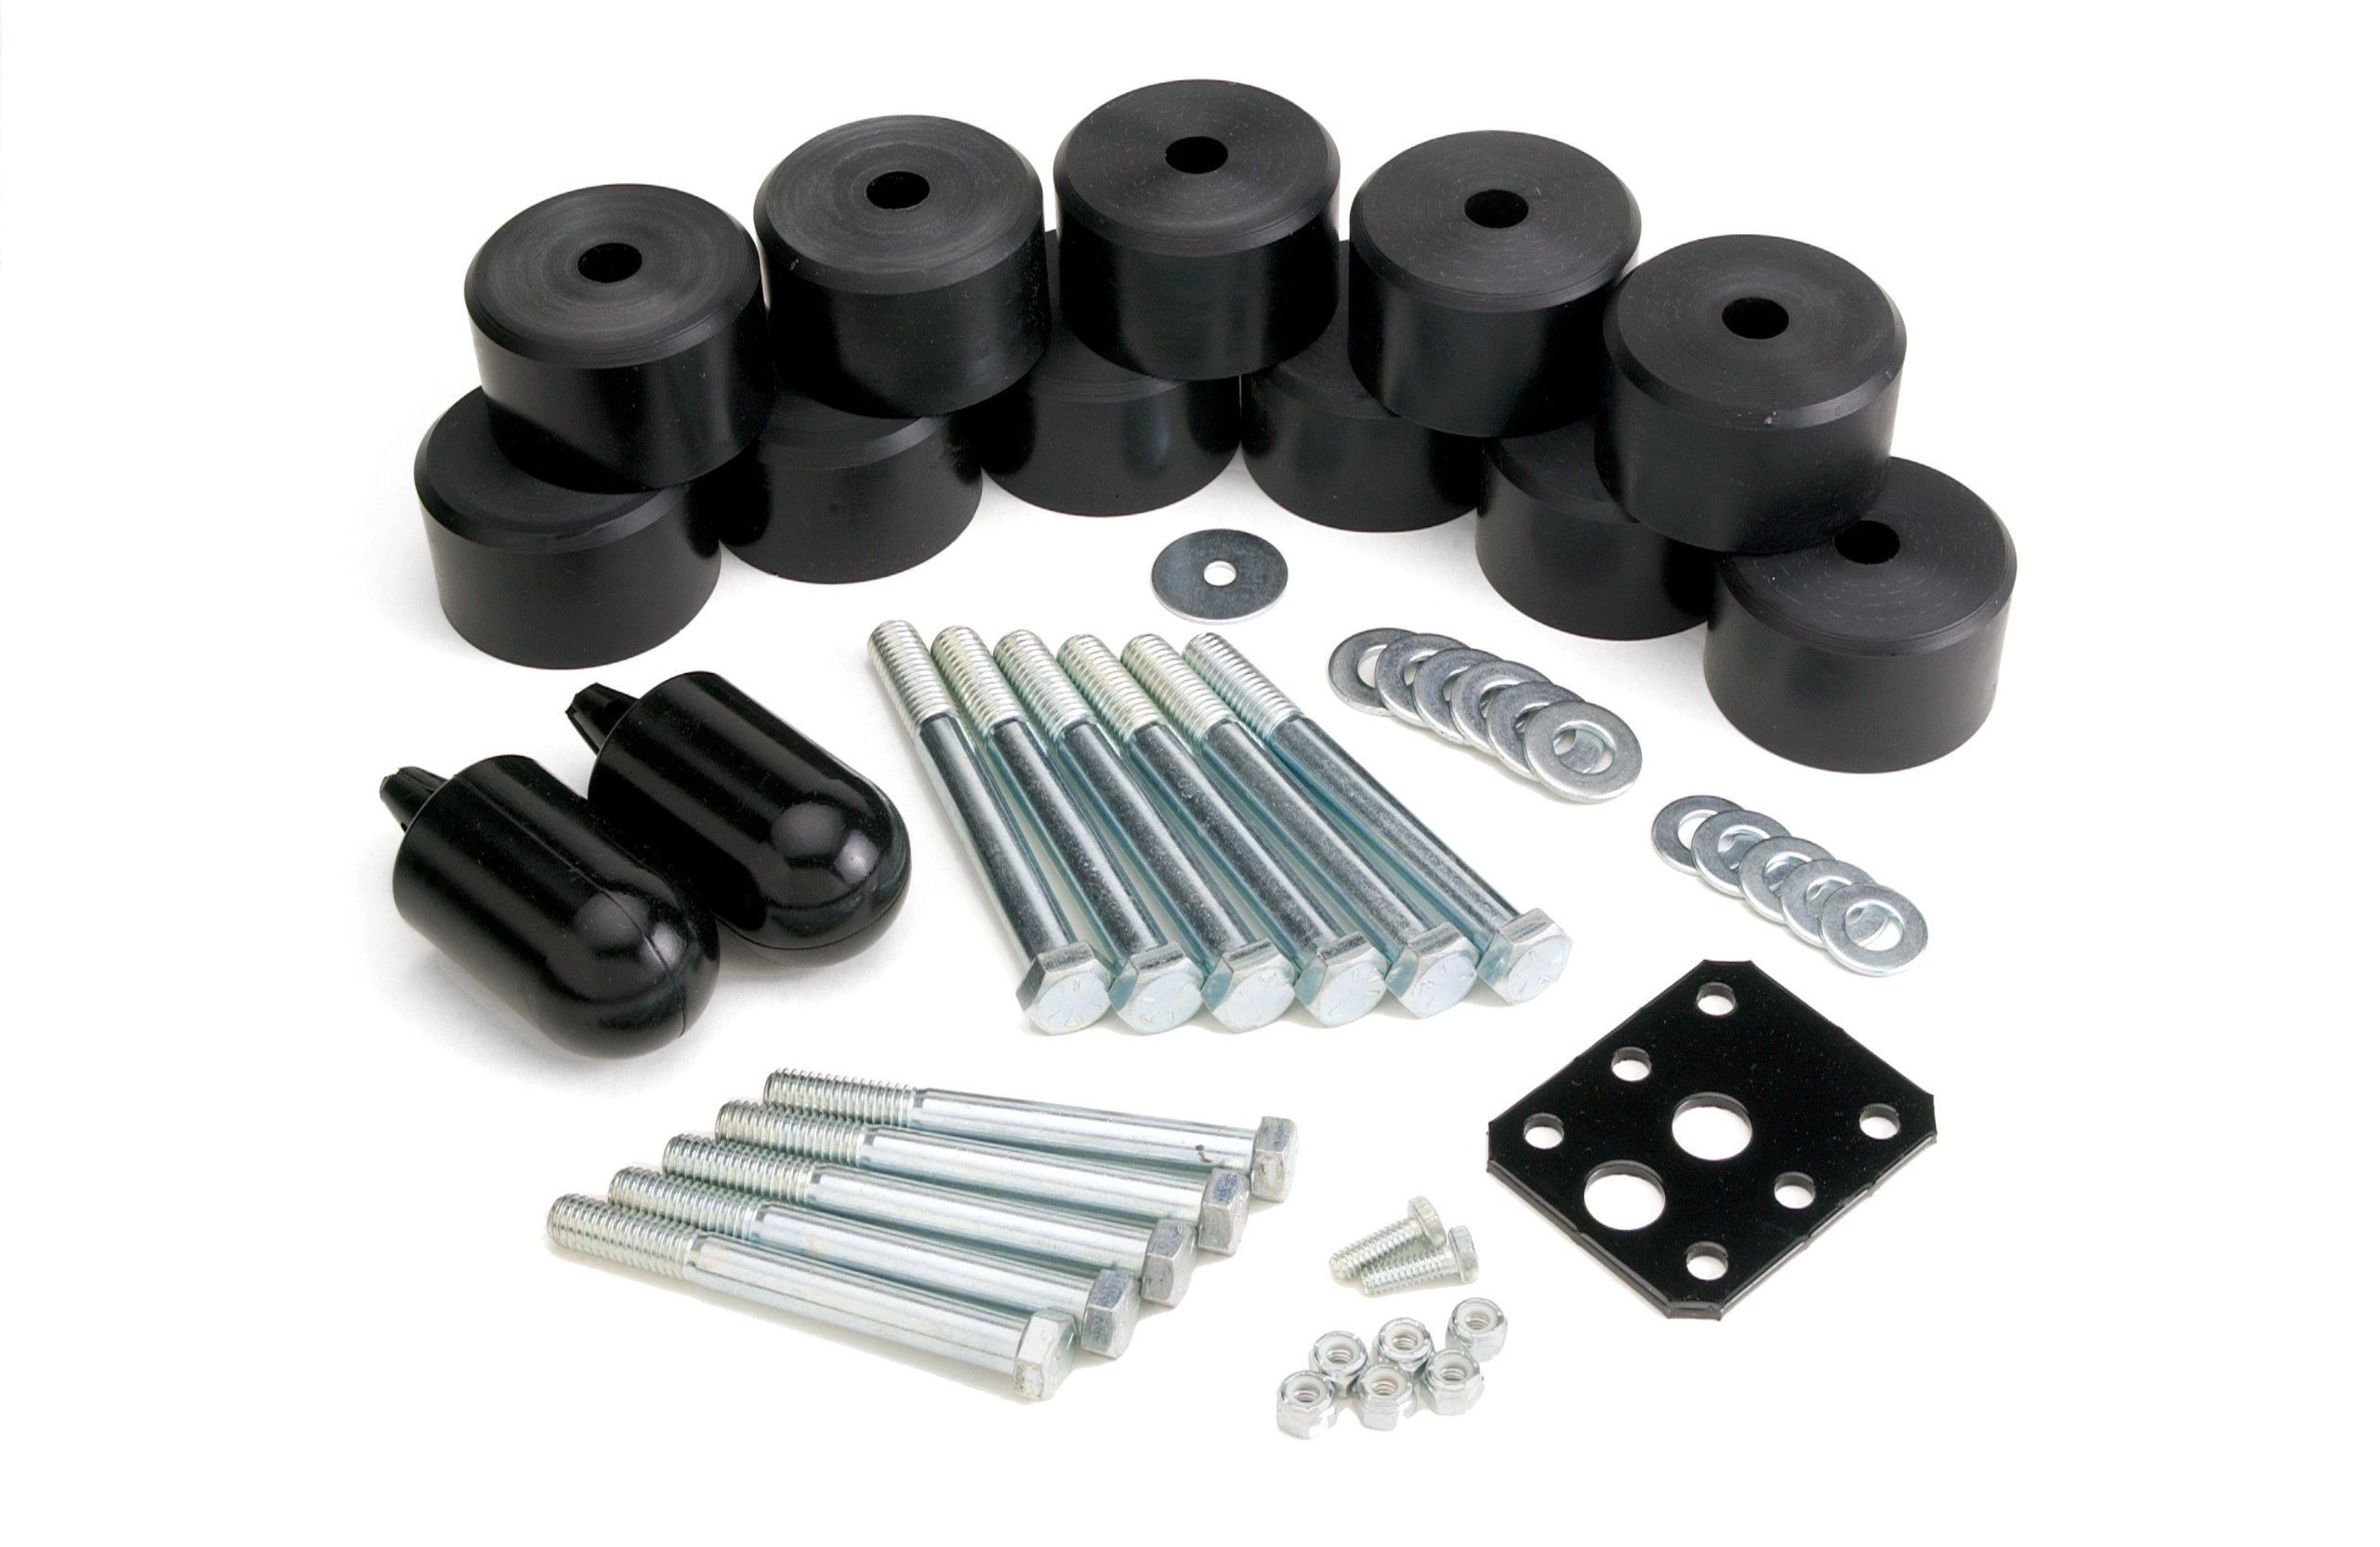 JKS 9904 1-1/4'' Body Lift System for Jeep TJ